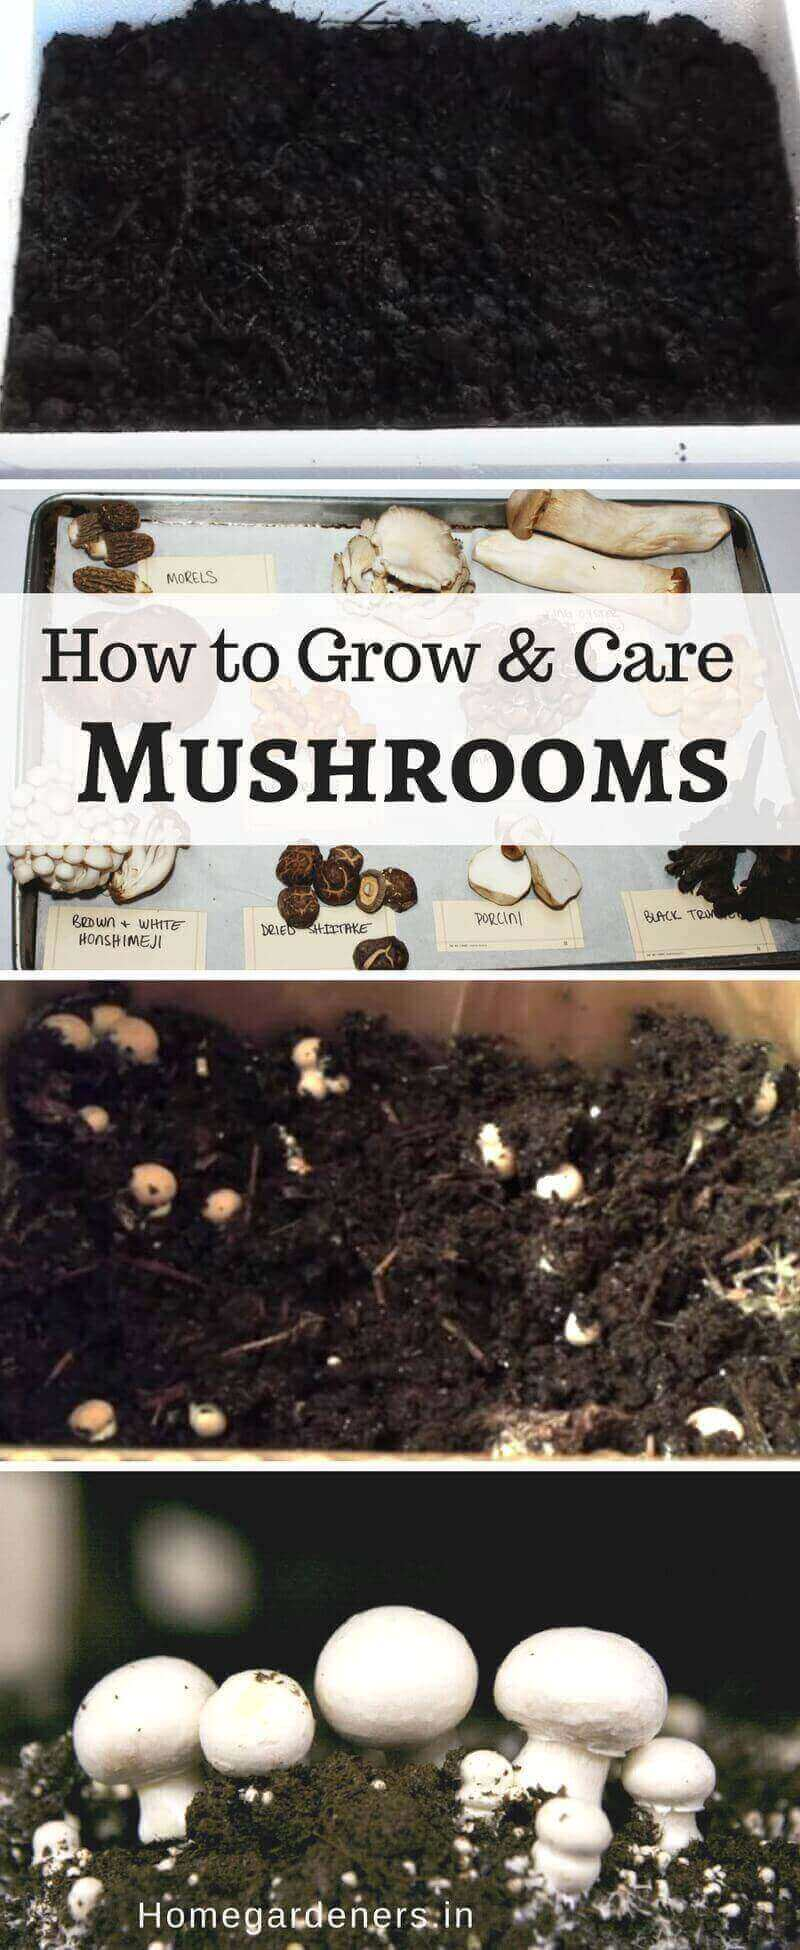 How to Grow and Care for Mushrooms easily